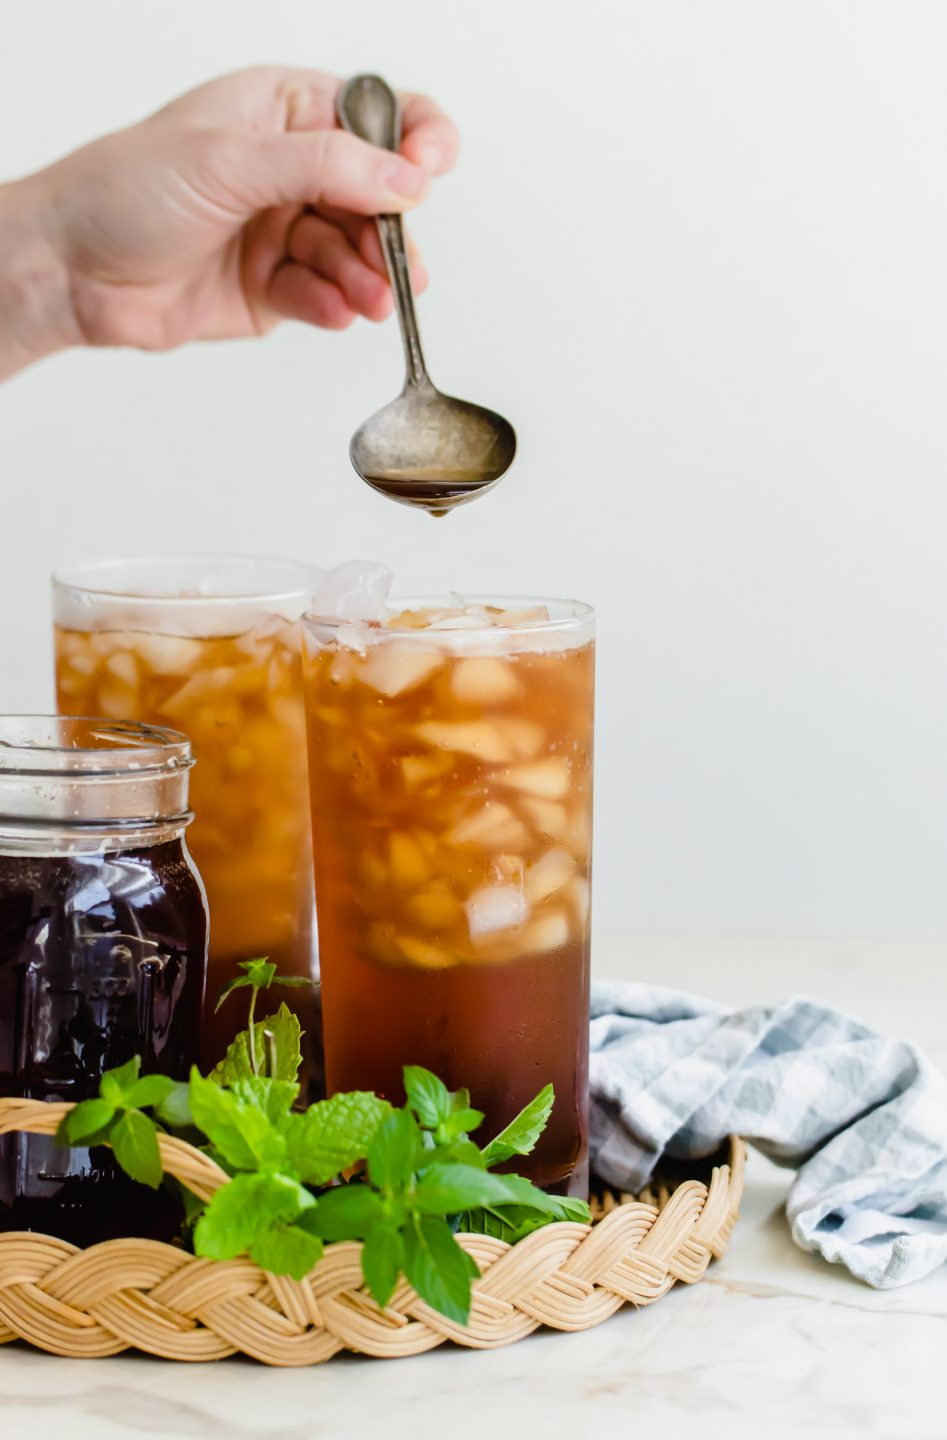 A hand spooning simple syrup into a full glass of iced tea.